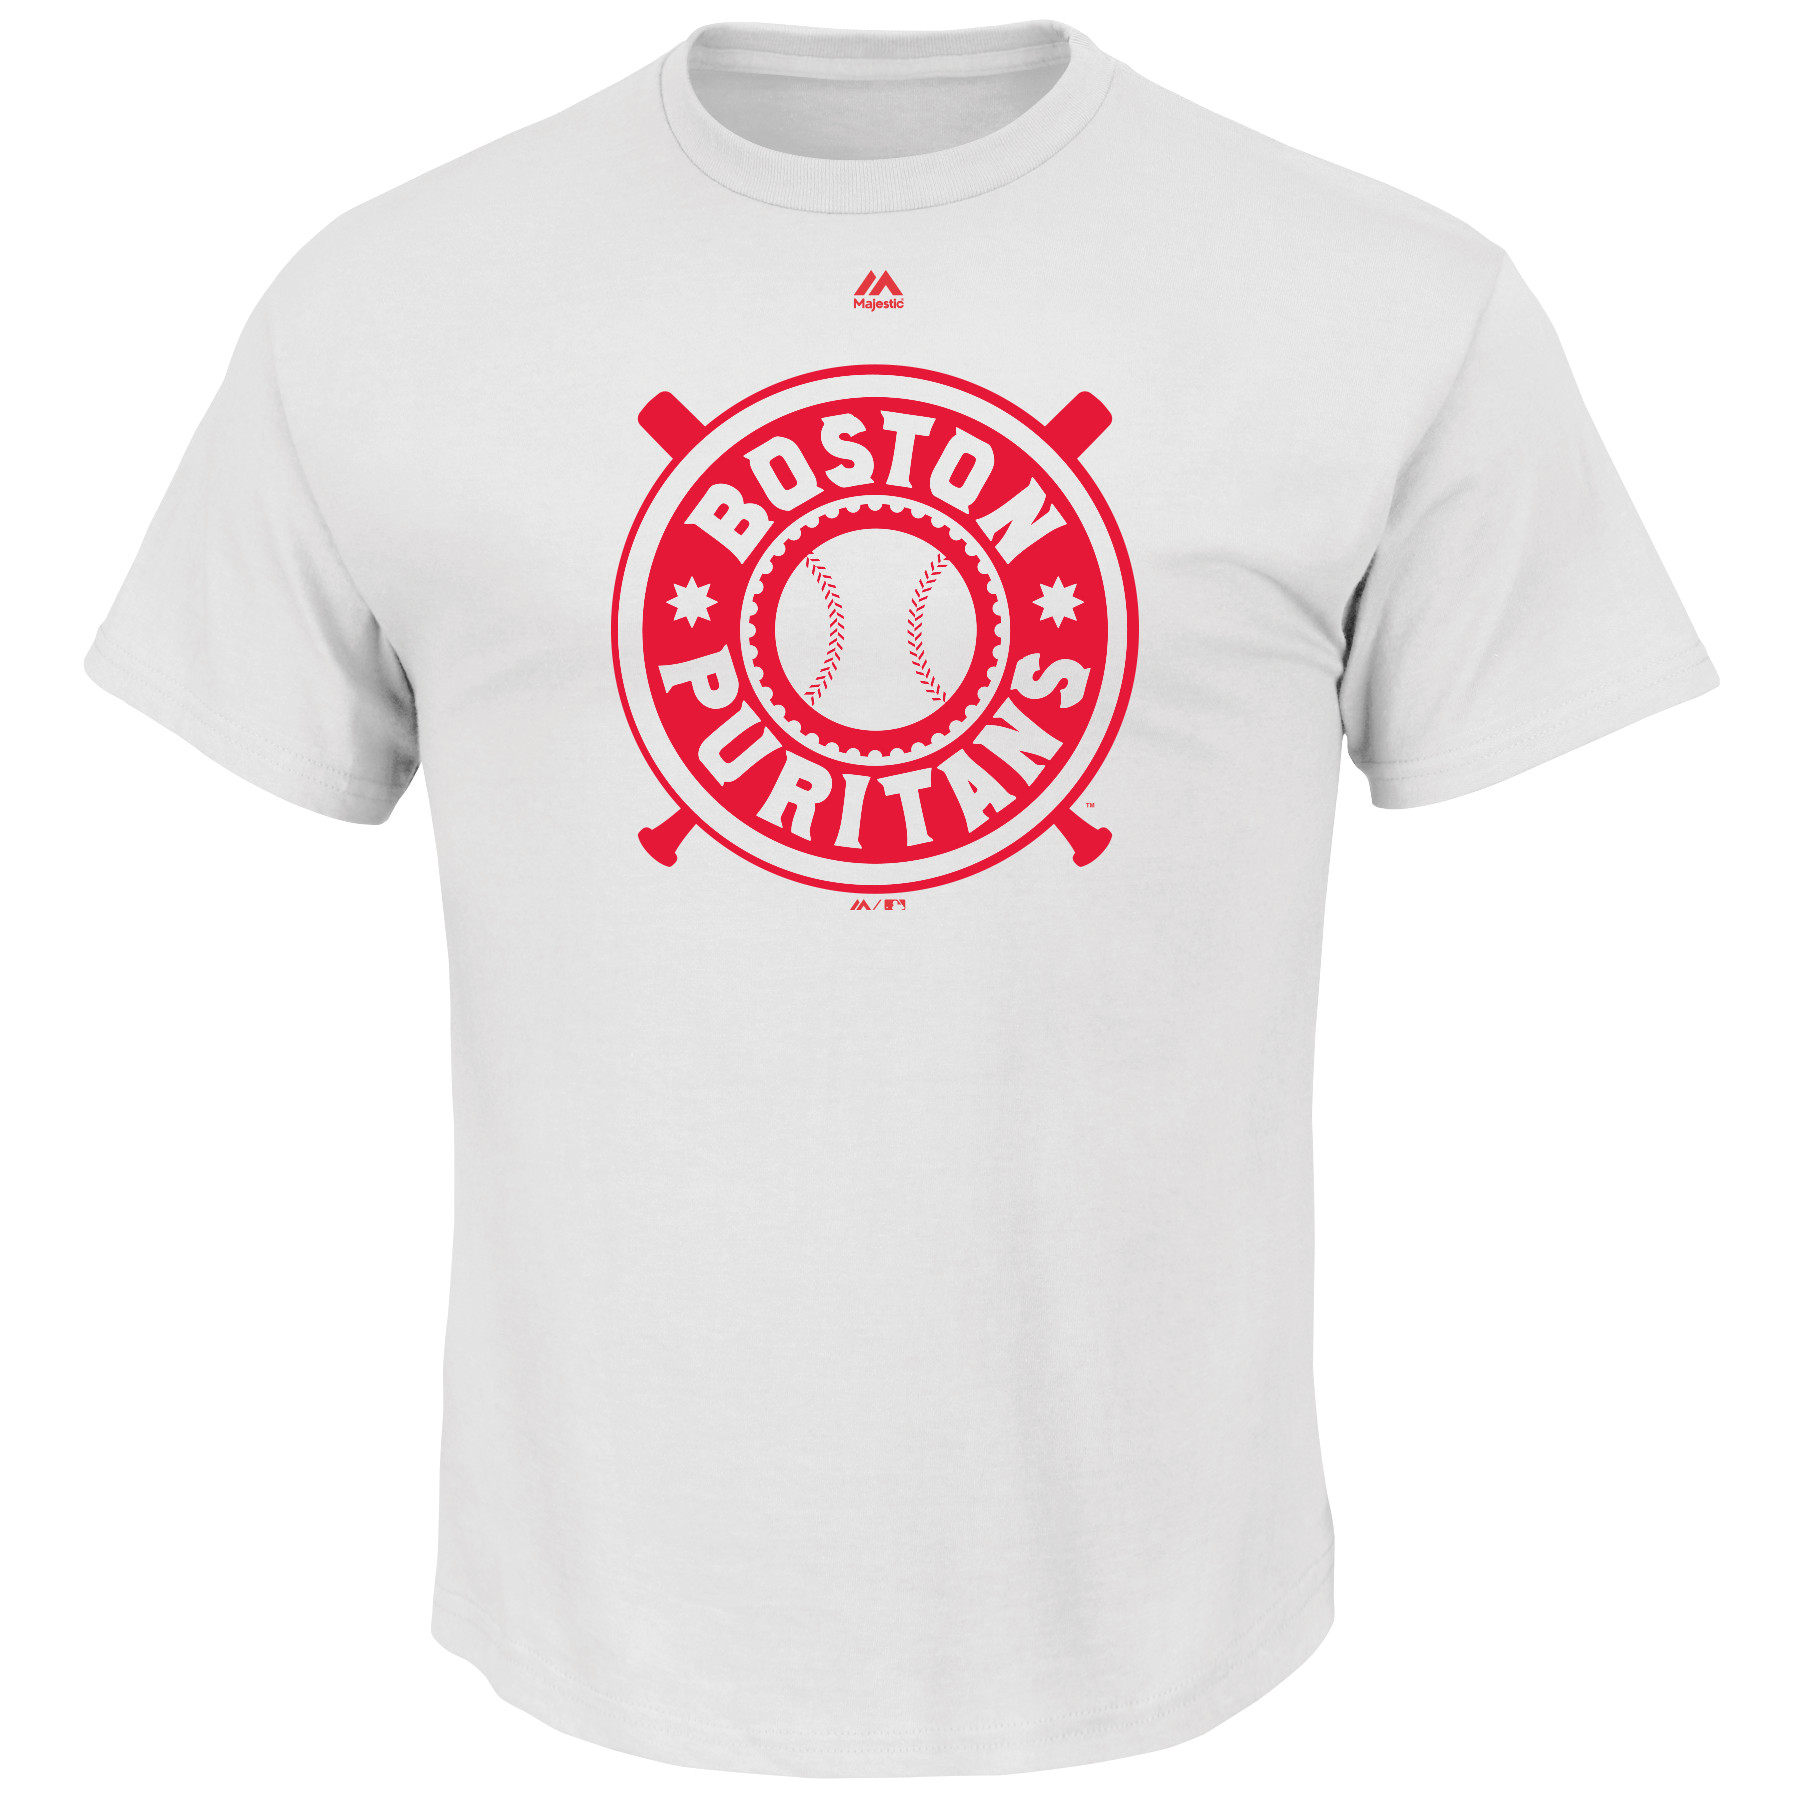 Boston Red Sox Majestic Boston Puritans Historical Team T-Shirt - White